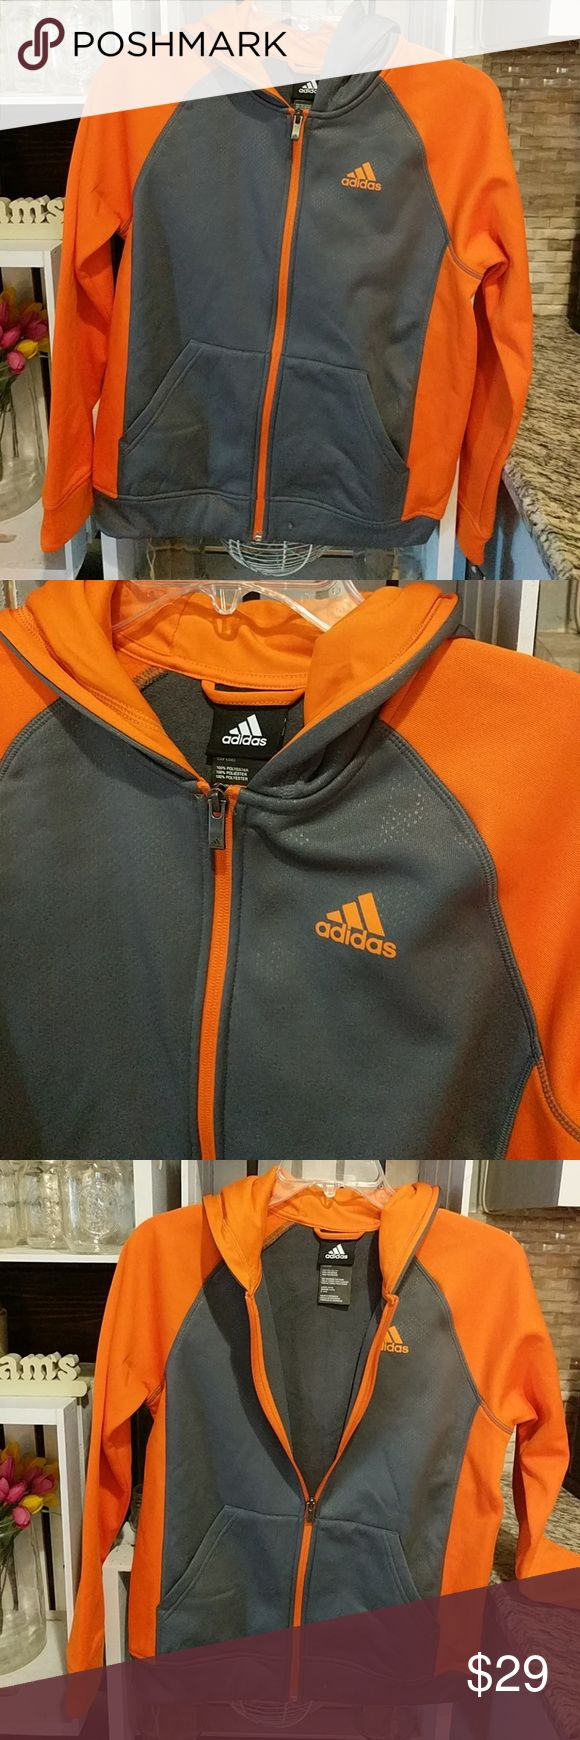 Nike zip up hoody. New with tags Gray and orange zip up with hood. Very soft. Fits woman's small Adidas Jackets & Coats